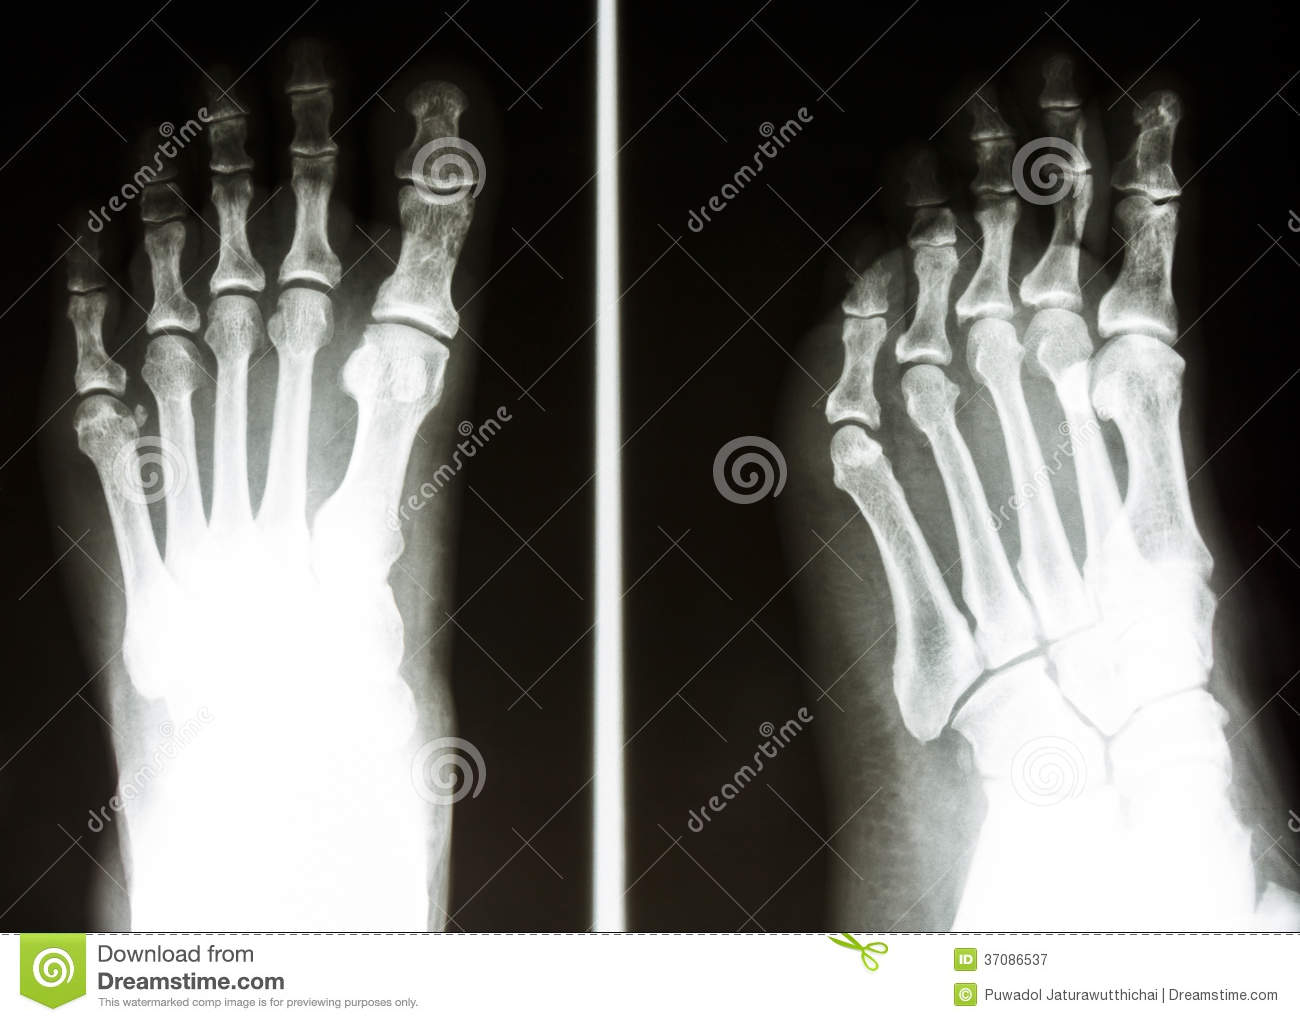 human foot x ray stock photos, images, & pictures - 677 images, Skeleton